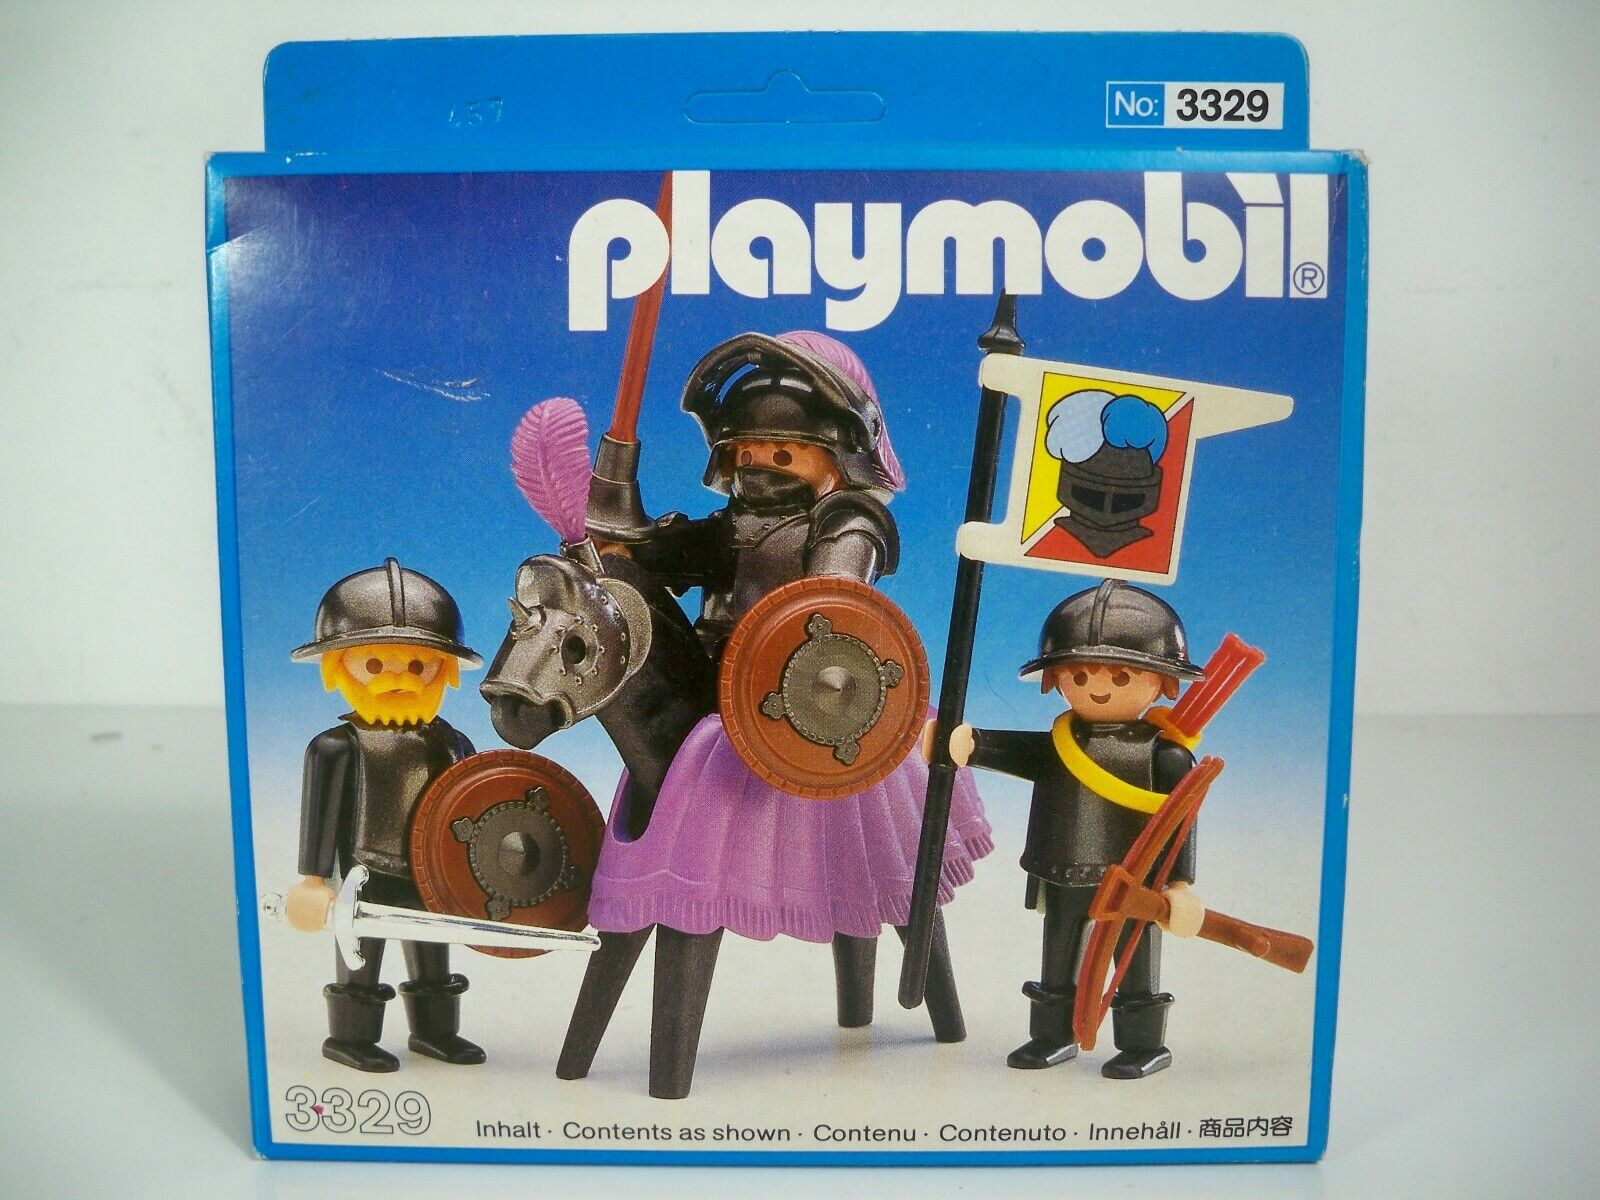 K190003 KNGHT &QUIRE SET MISB MINT IN SELVED scatola PLAY MOBIL 3329 VINTAGE